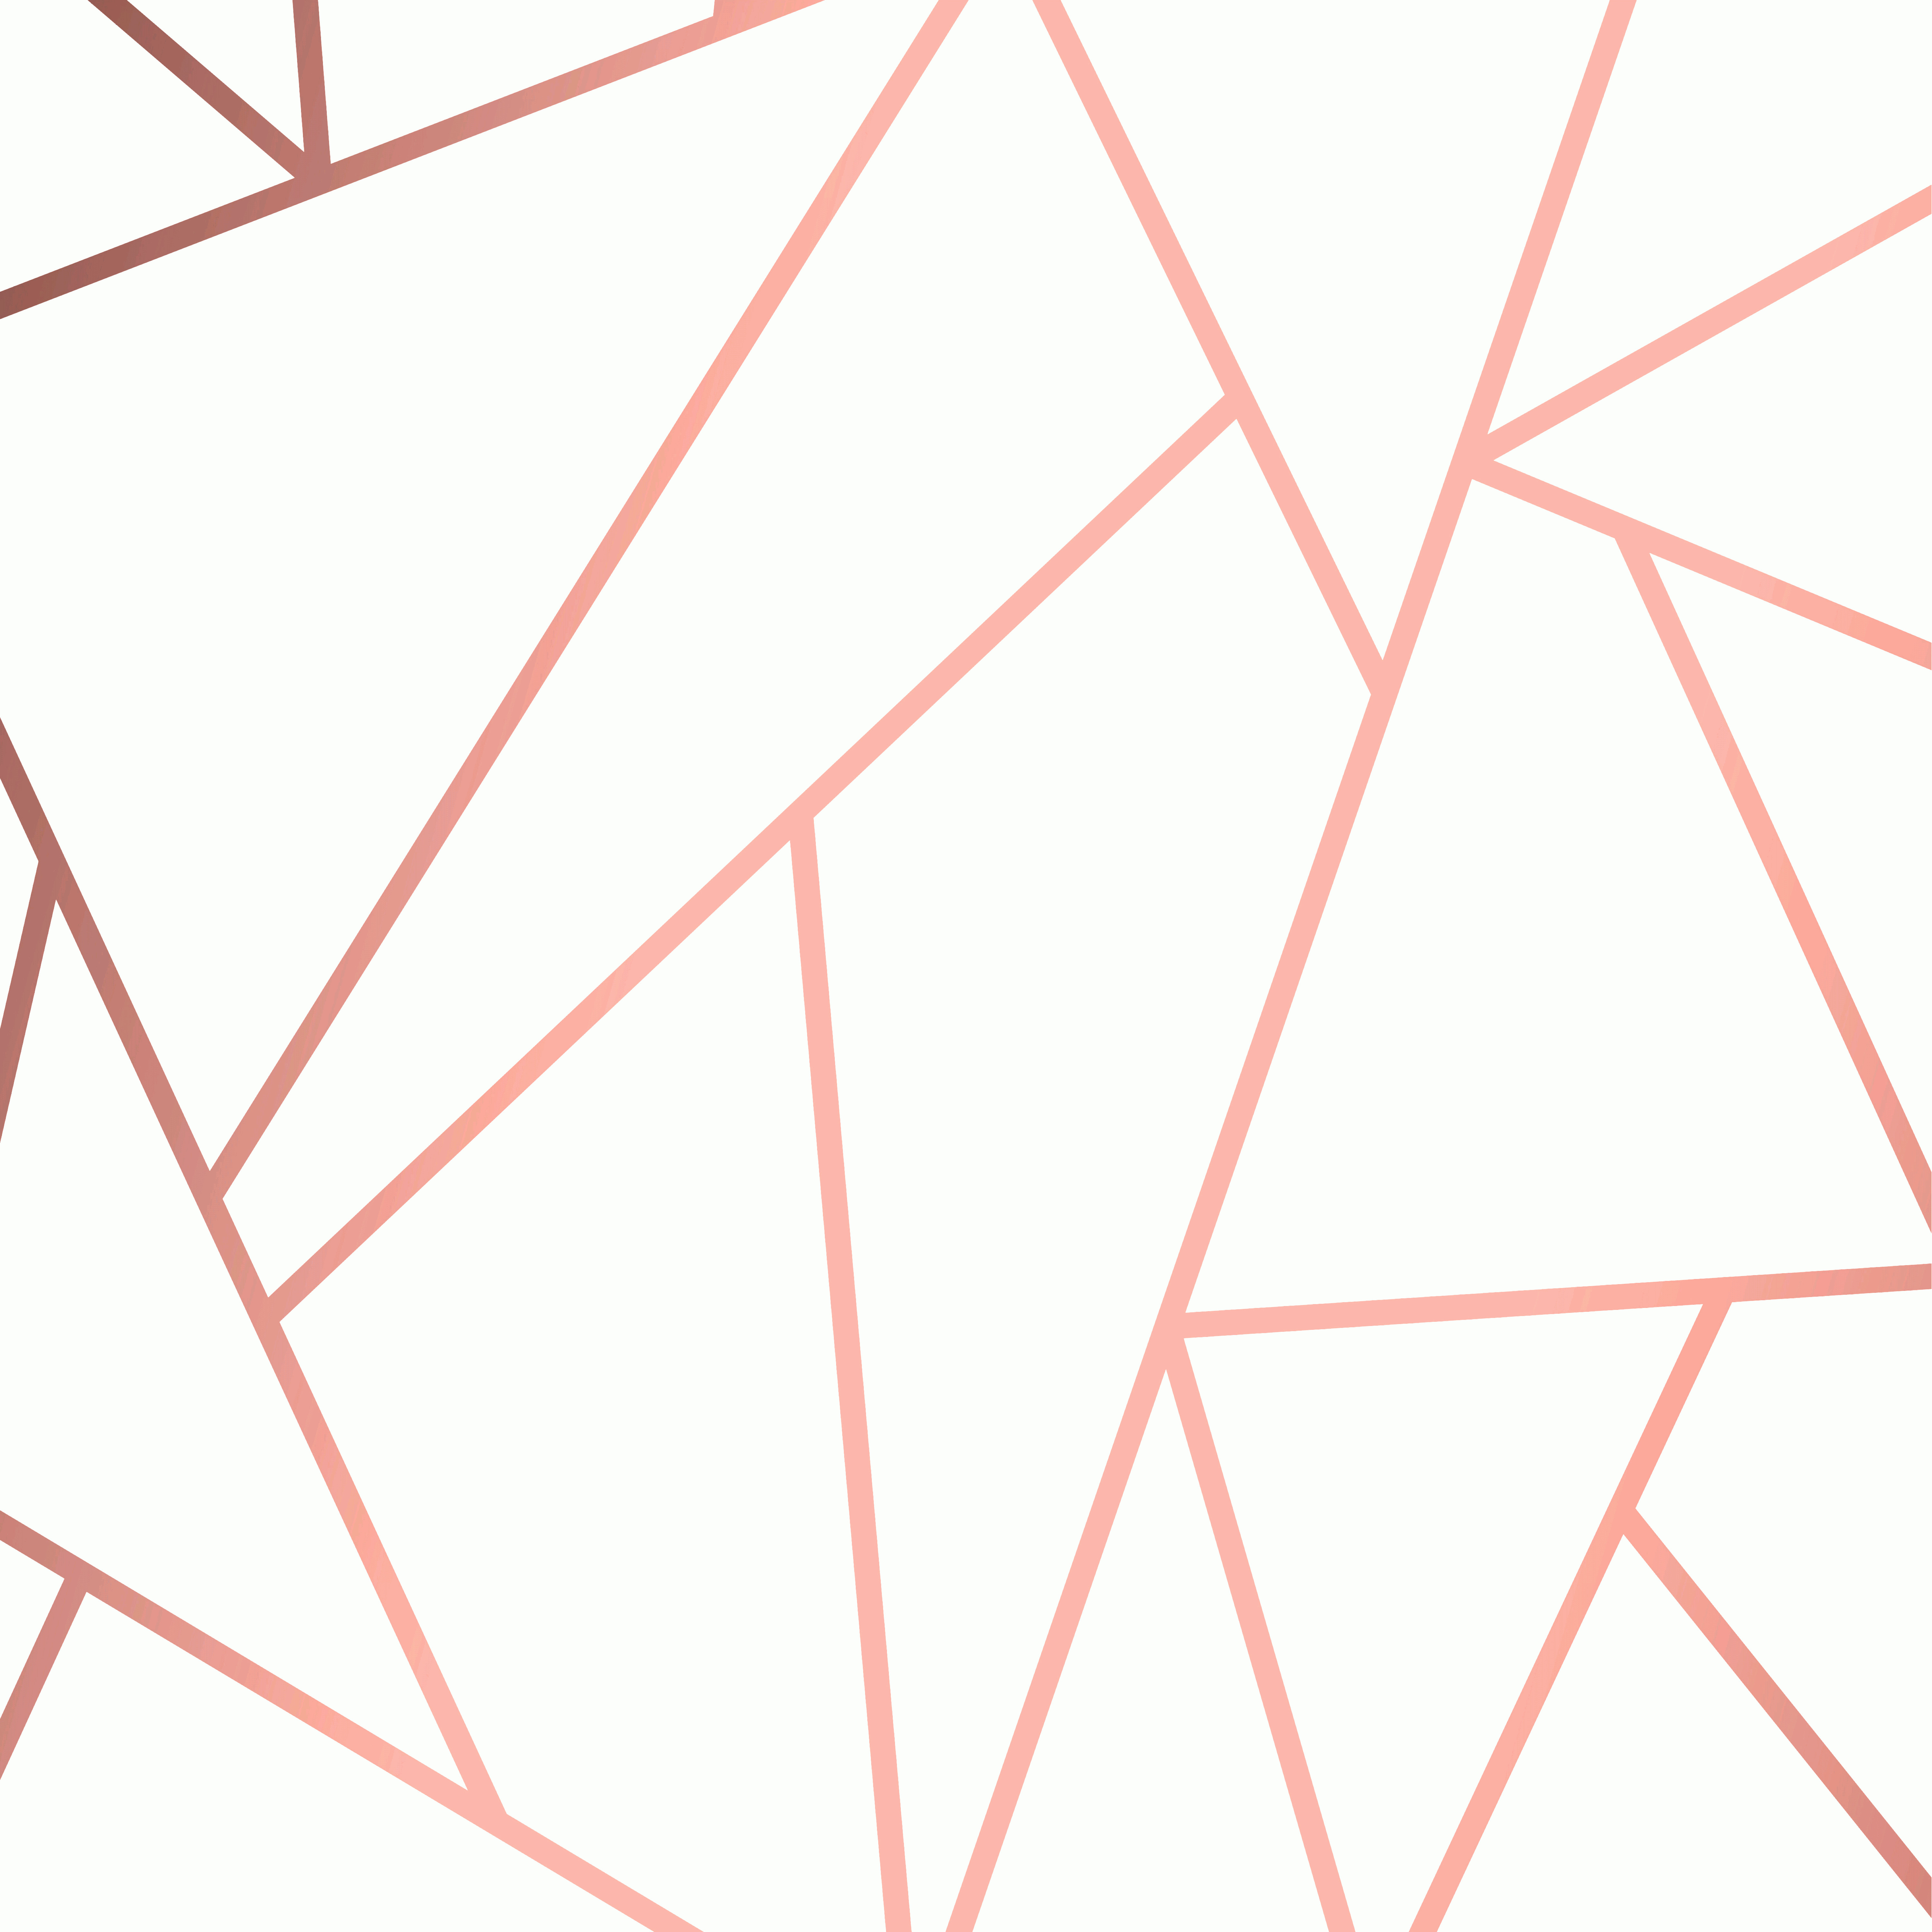 Contemporary Wallpaper Art Vector: Modern Mosaic Wallpaper In Rose Gold And White